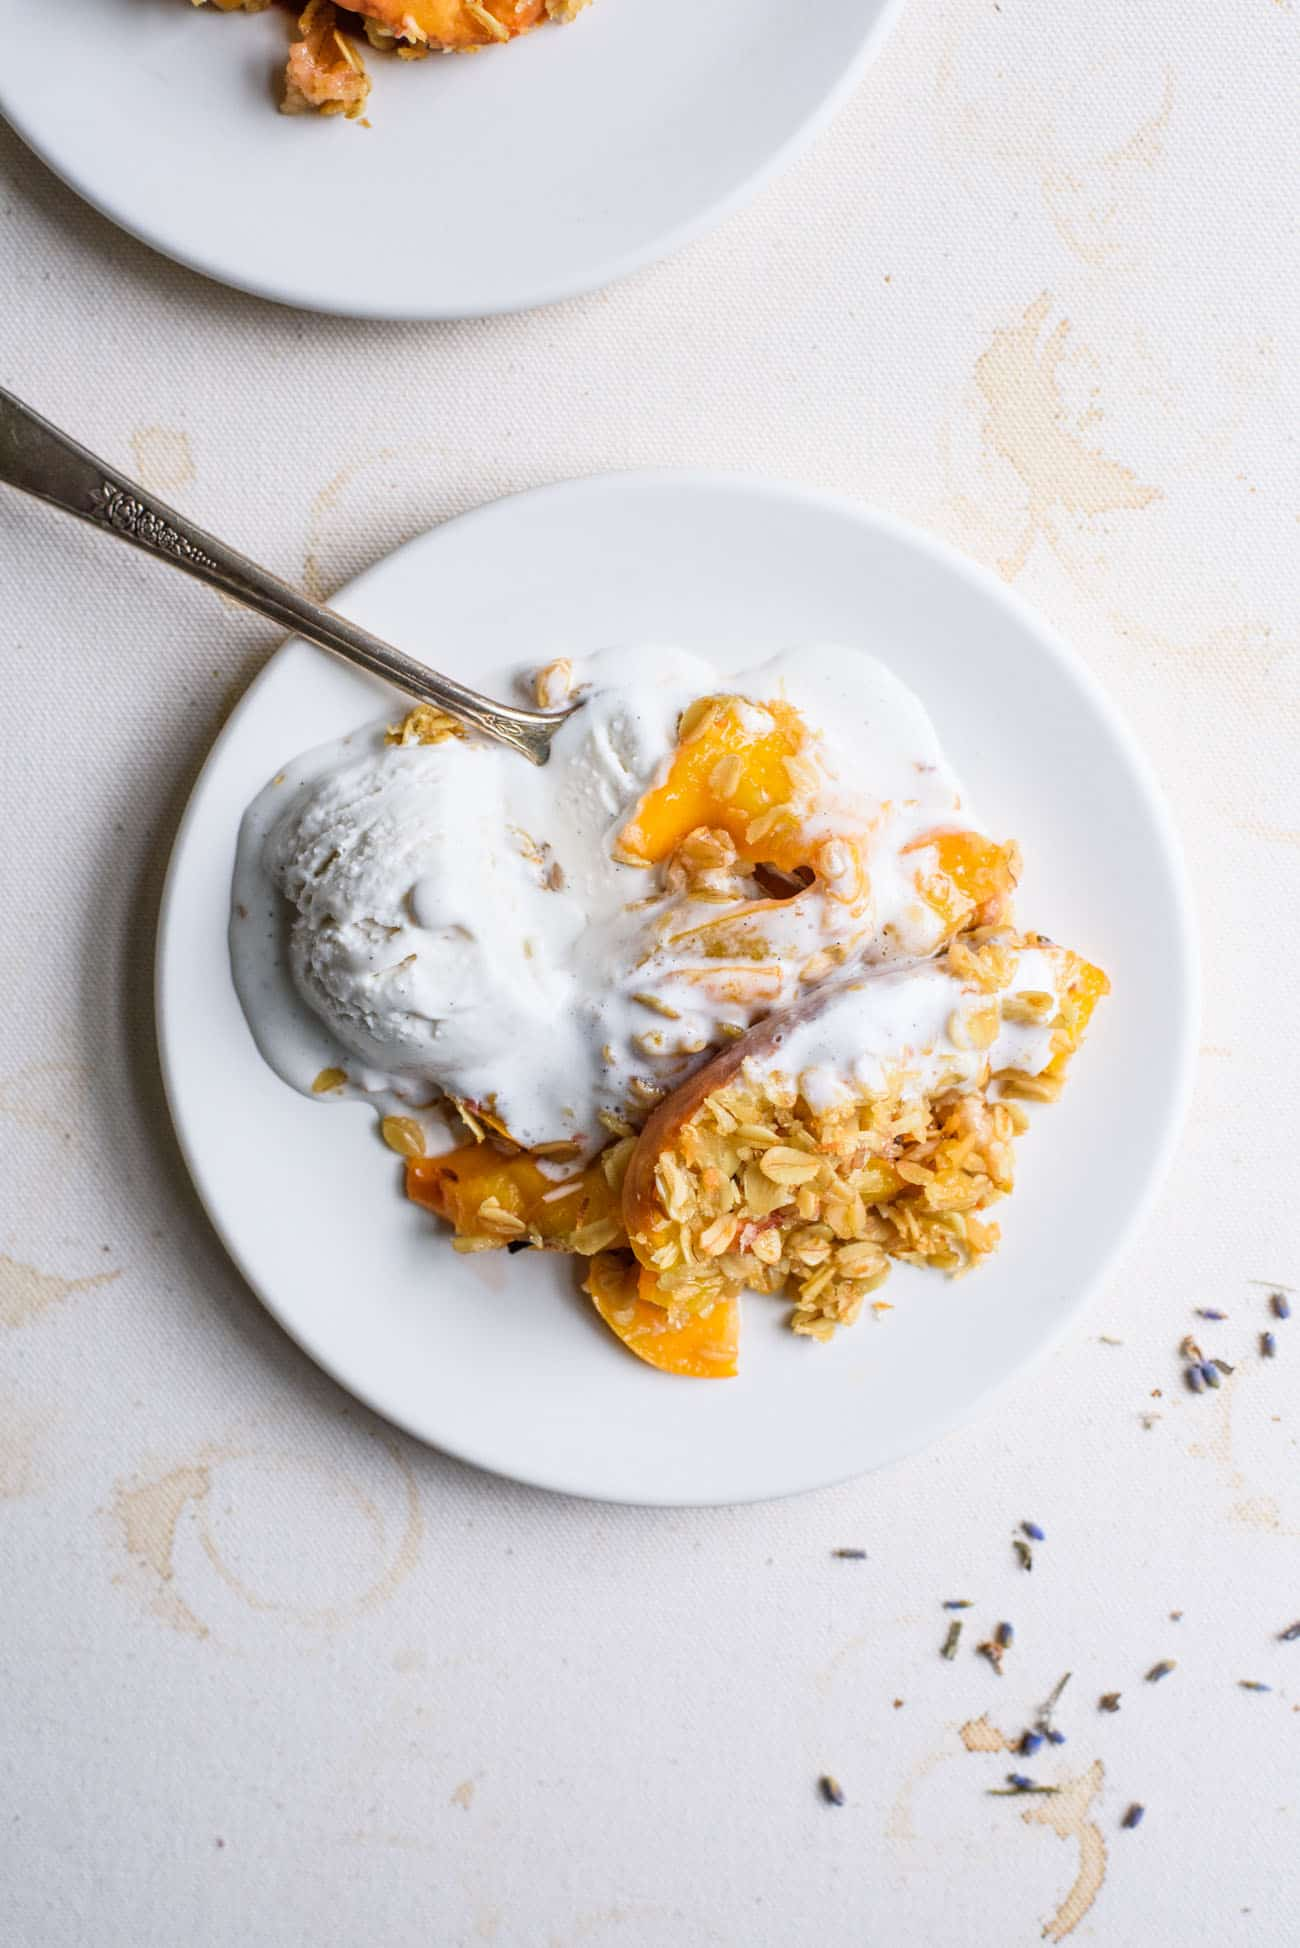 Peach crisp with oats on a white plate, topped with melting vanilla ice cream